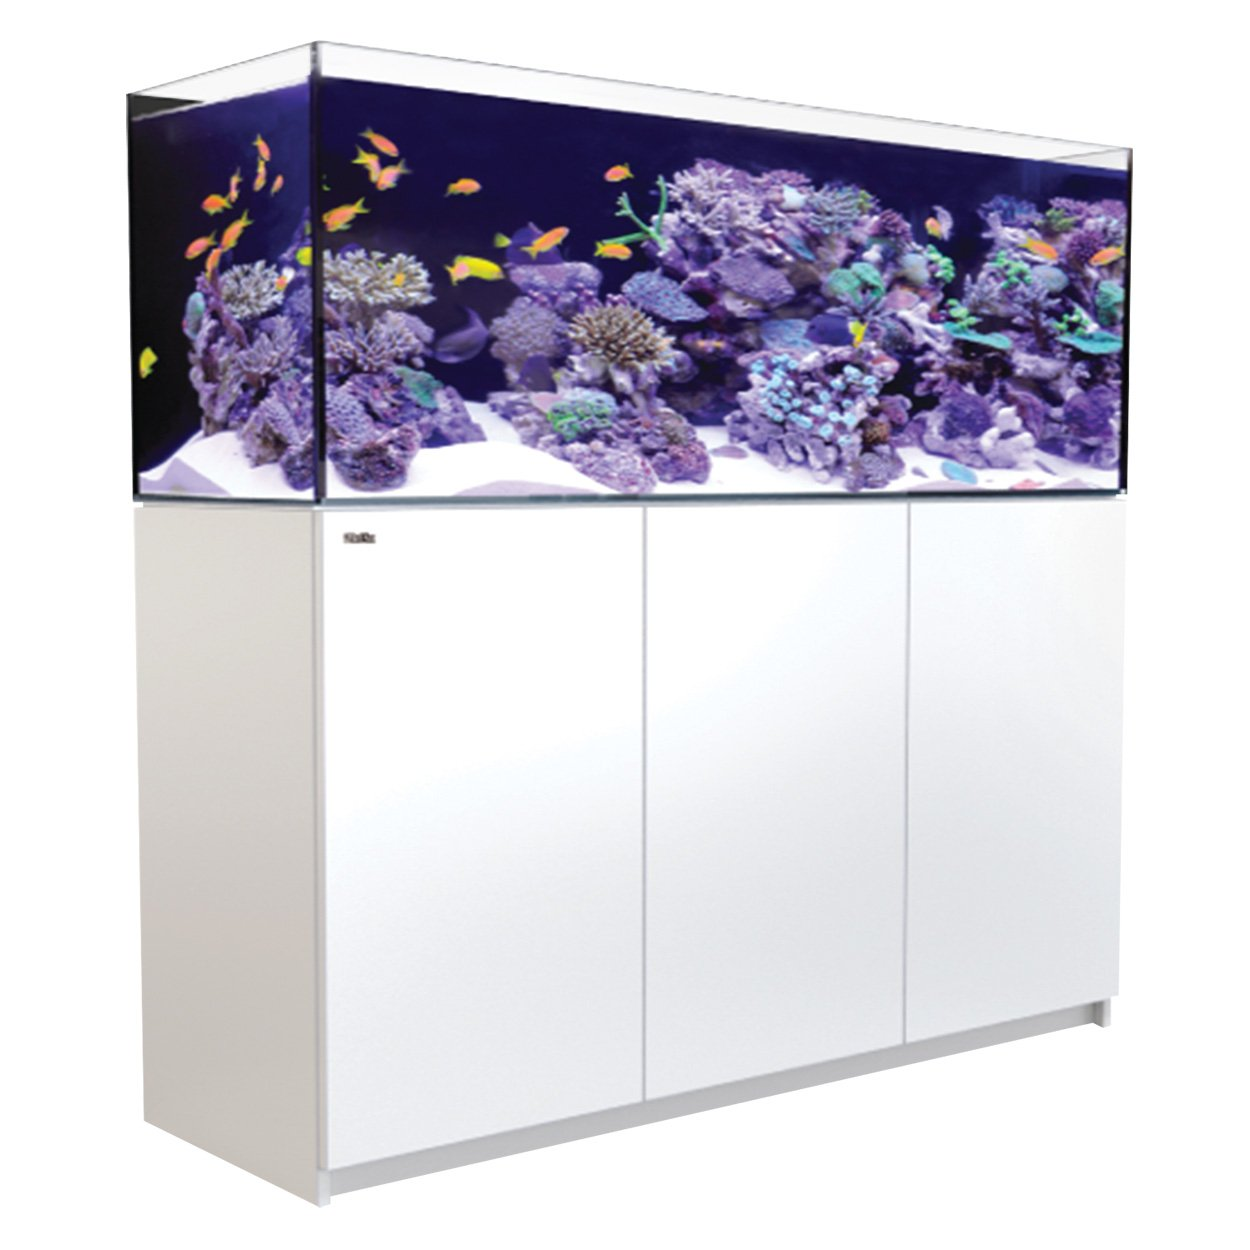 Red Sea 23438 Reefer X-Large 525 Rimless Reef-Ready Aquarium System